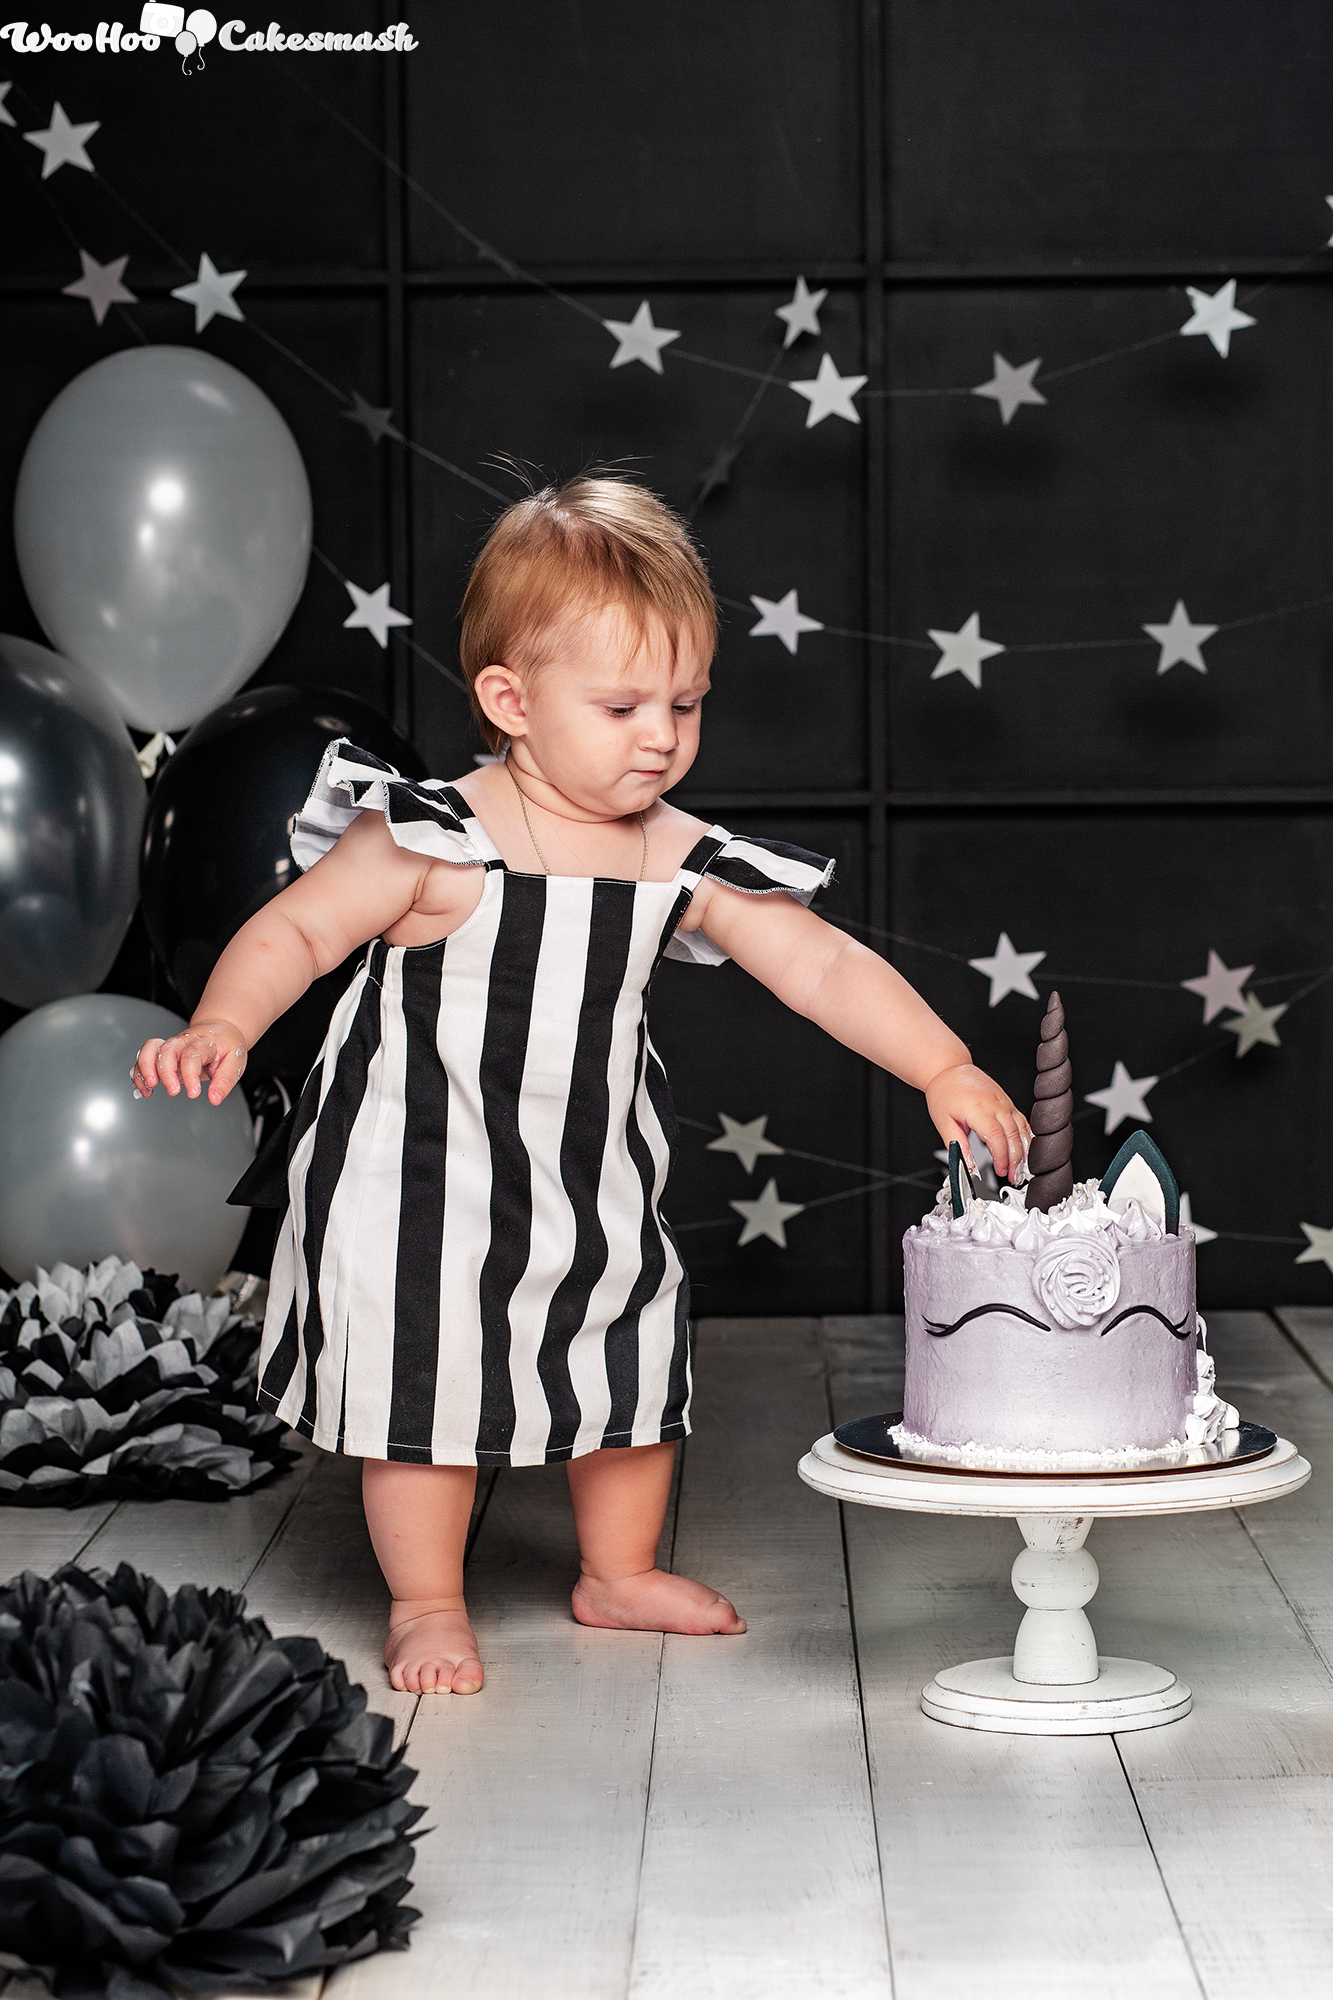 woohoo_cakesmash_Eva_black_and_white_3